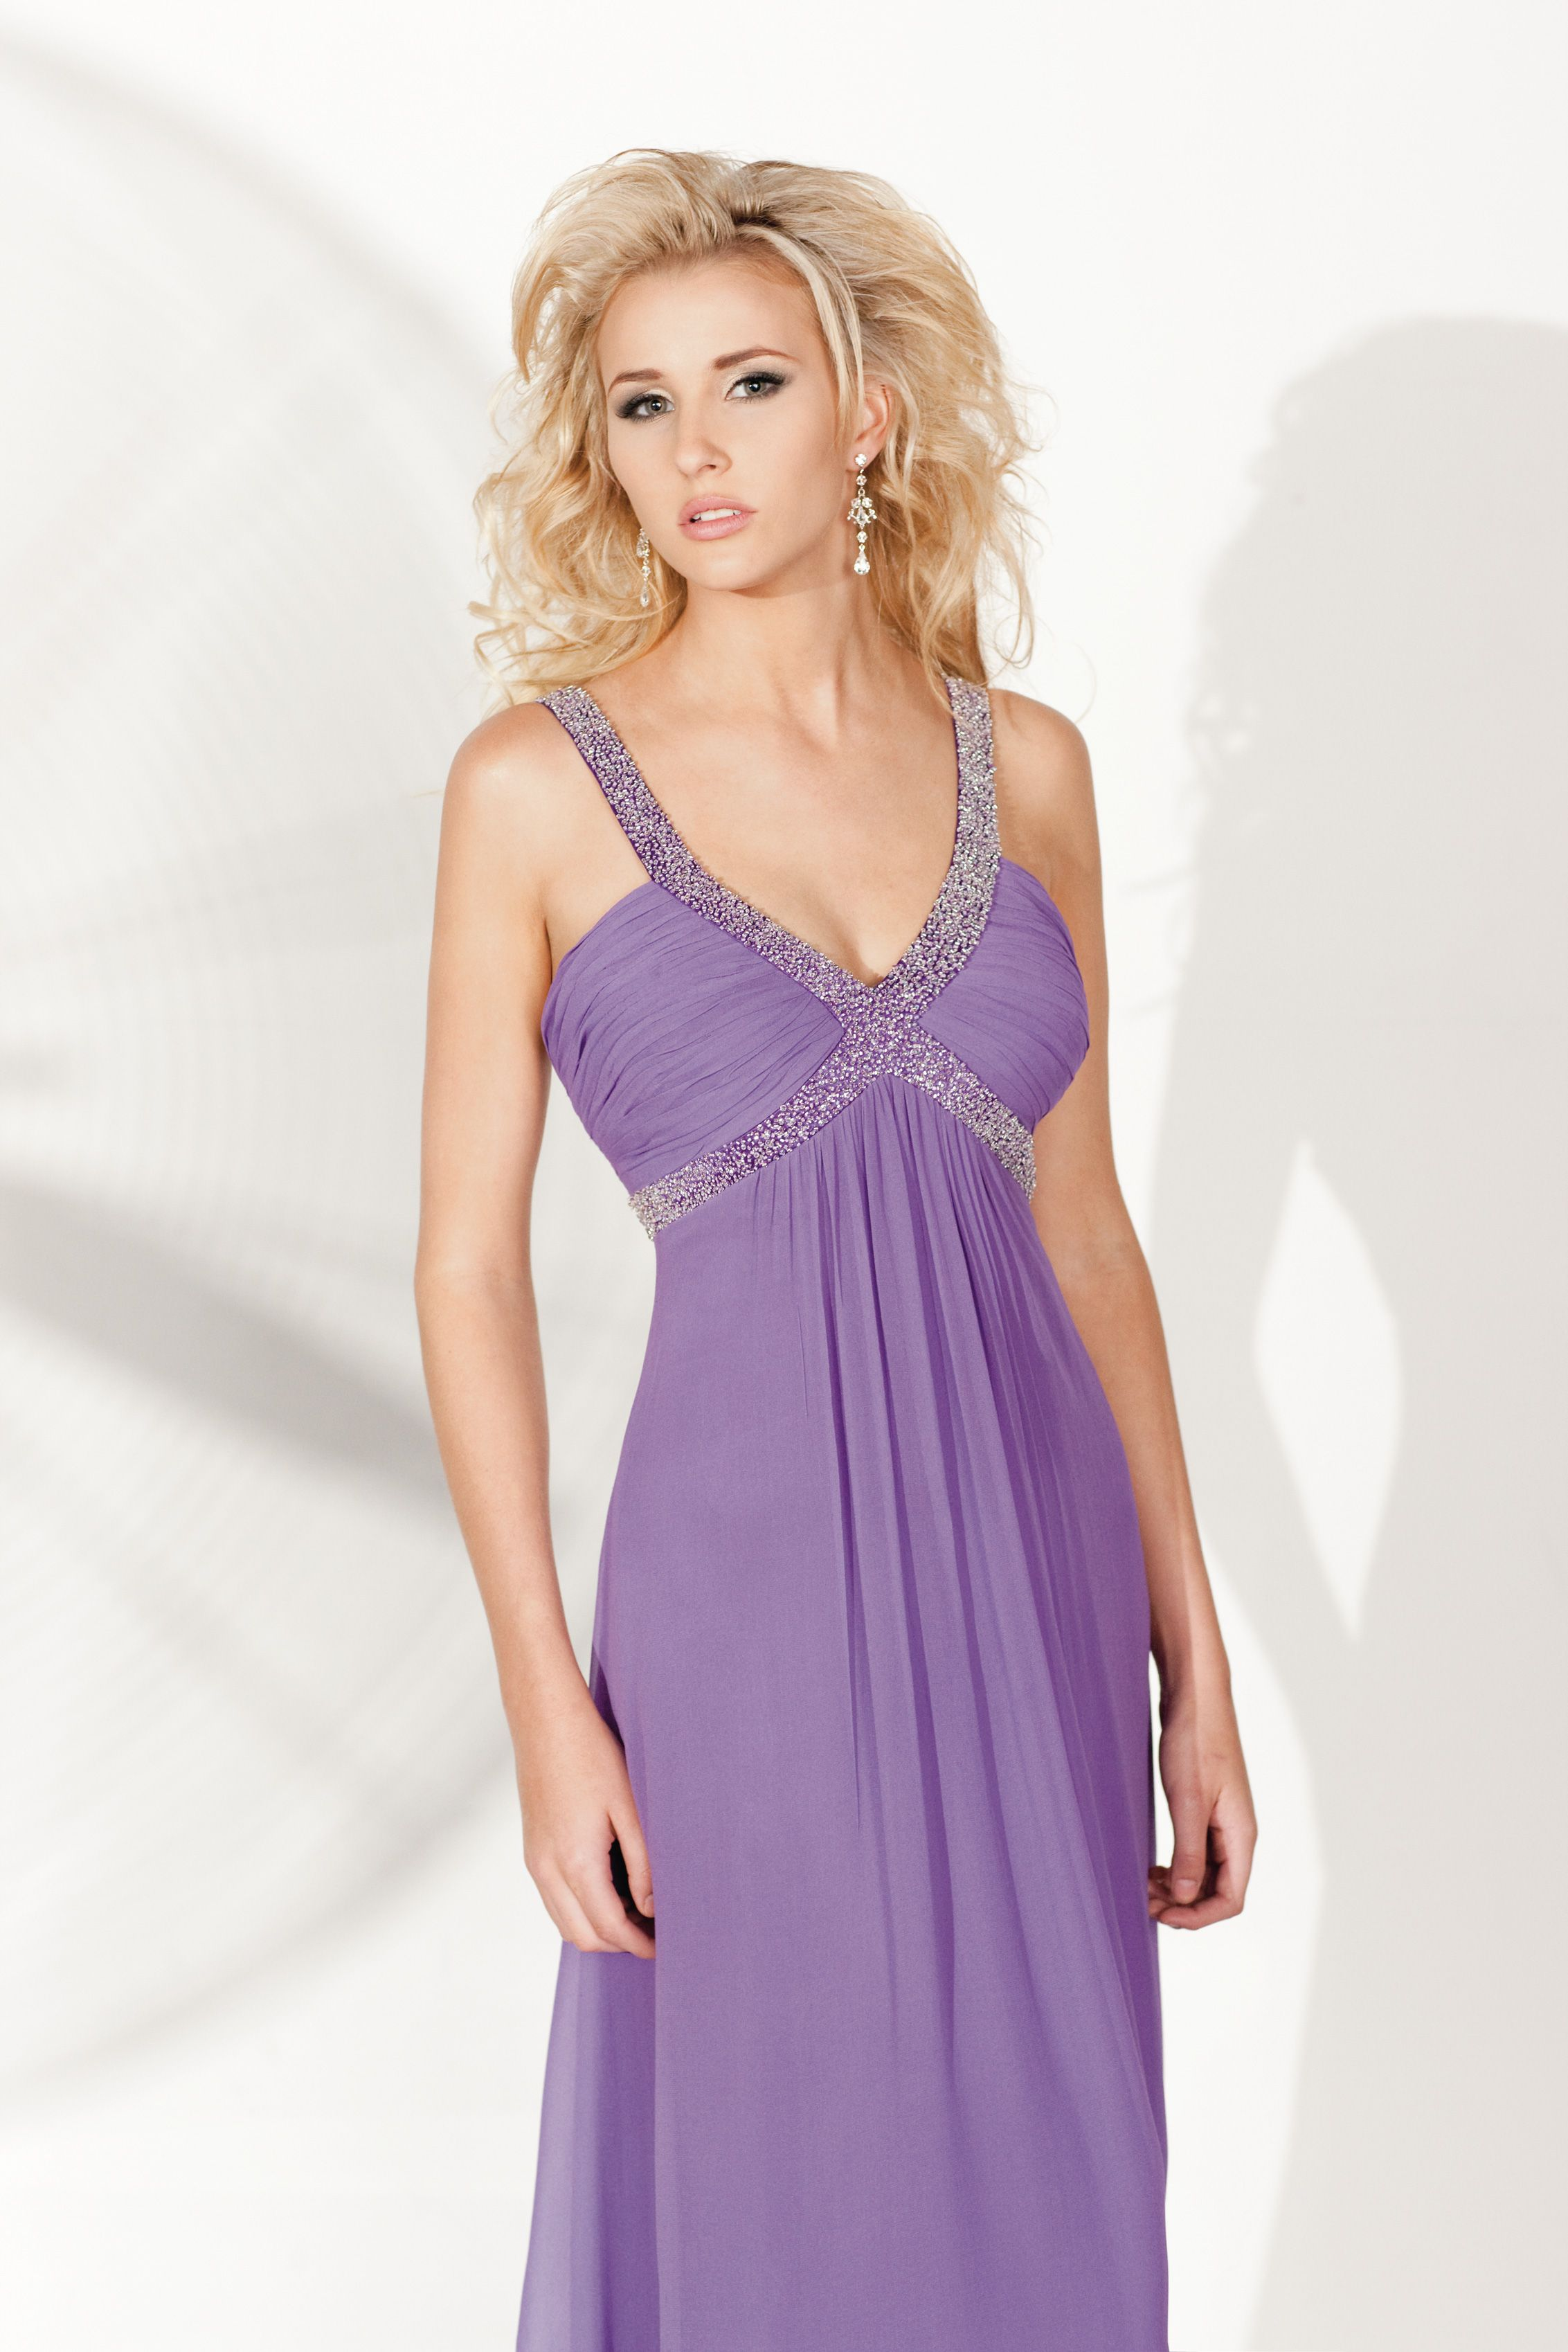 Lavender Bridesmaid Dress, very popular colour trend at the moment ...